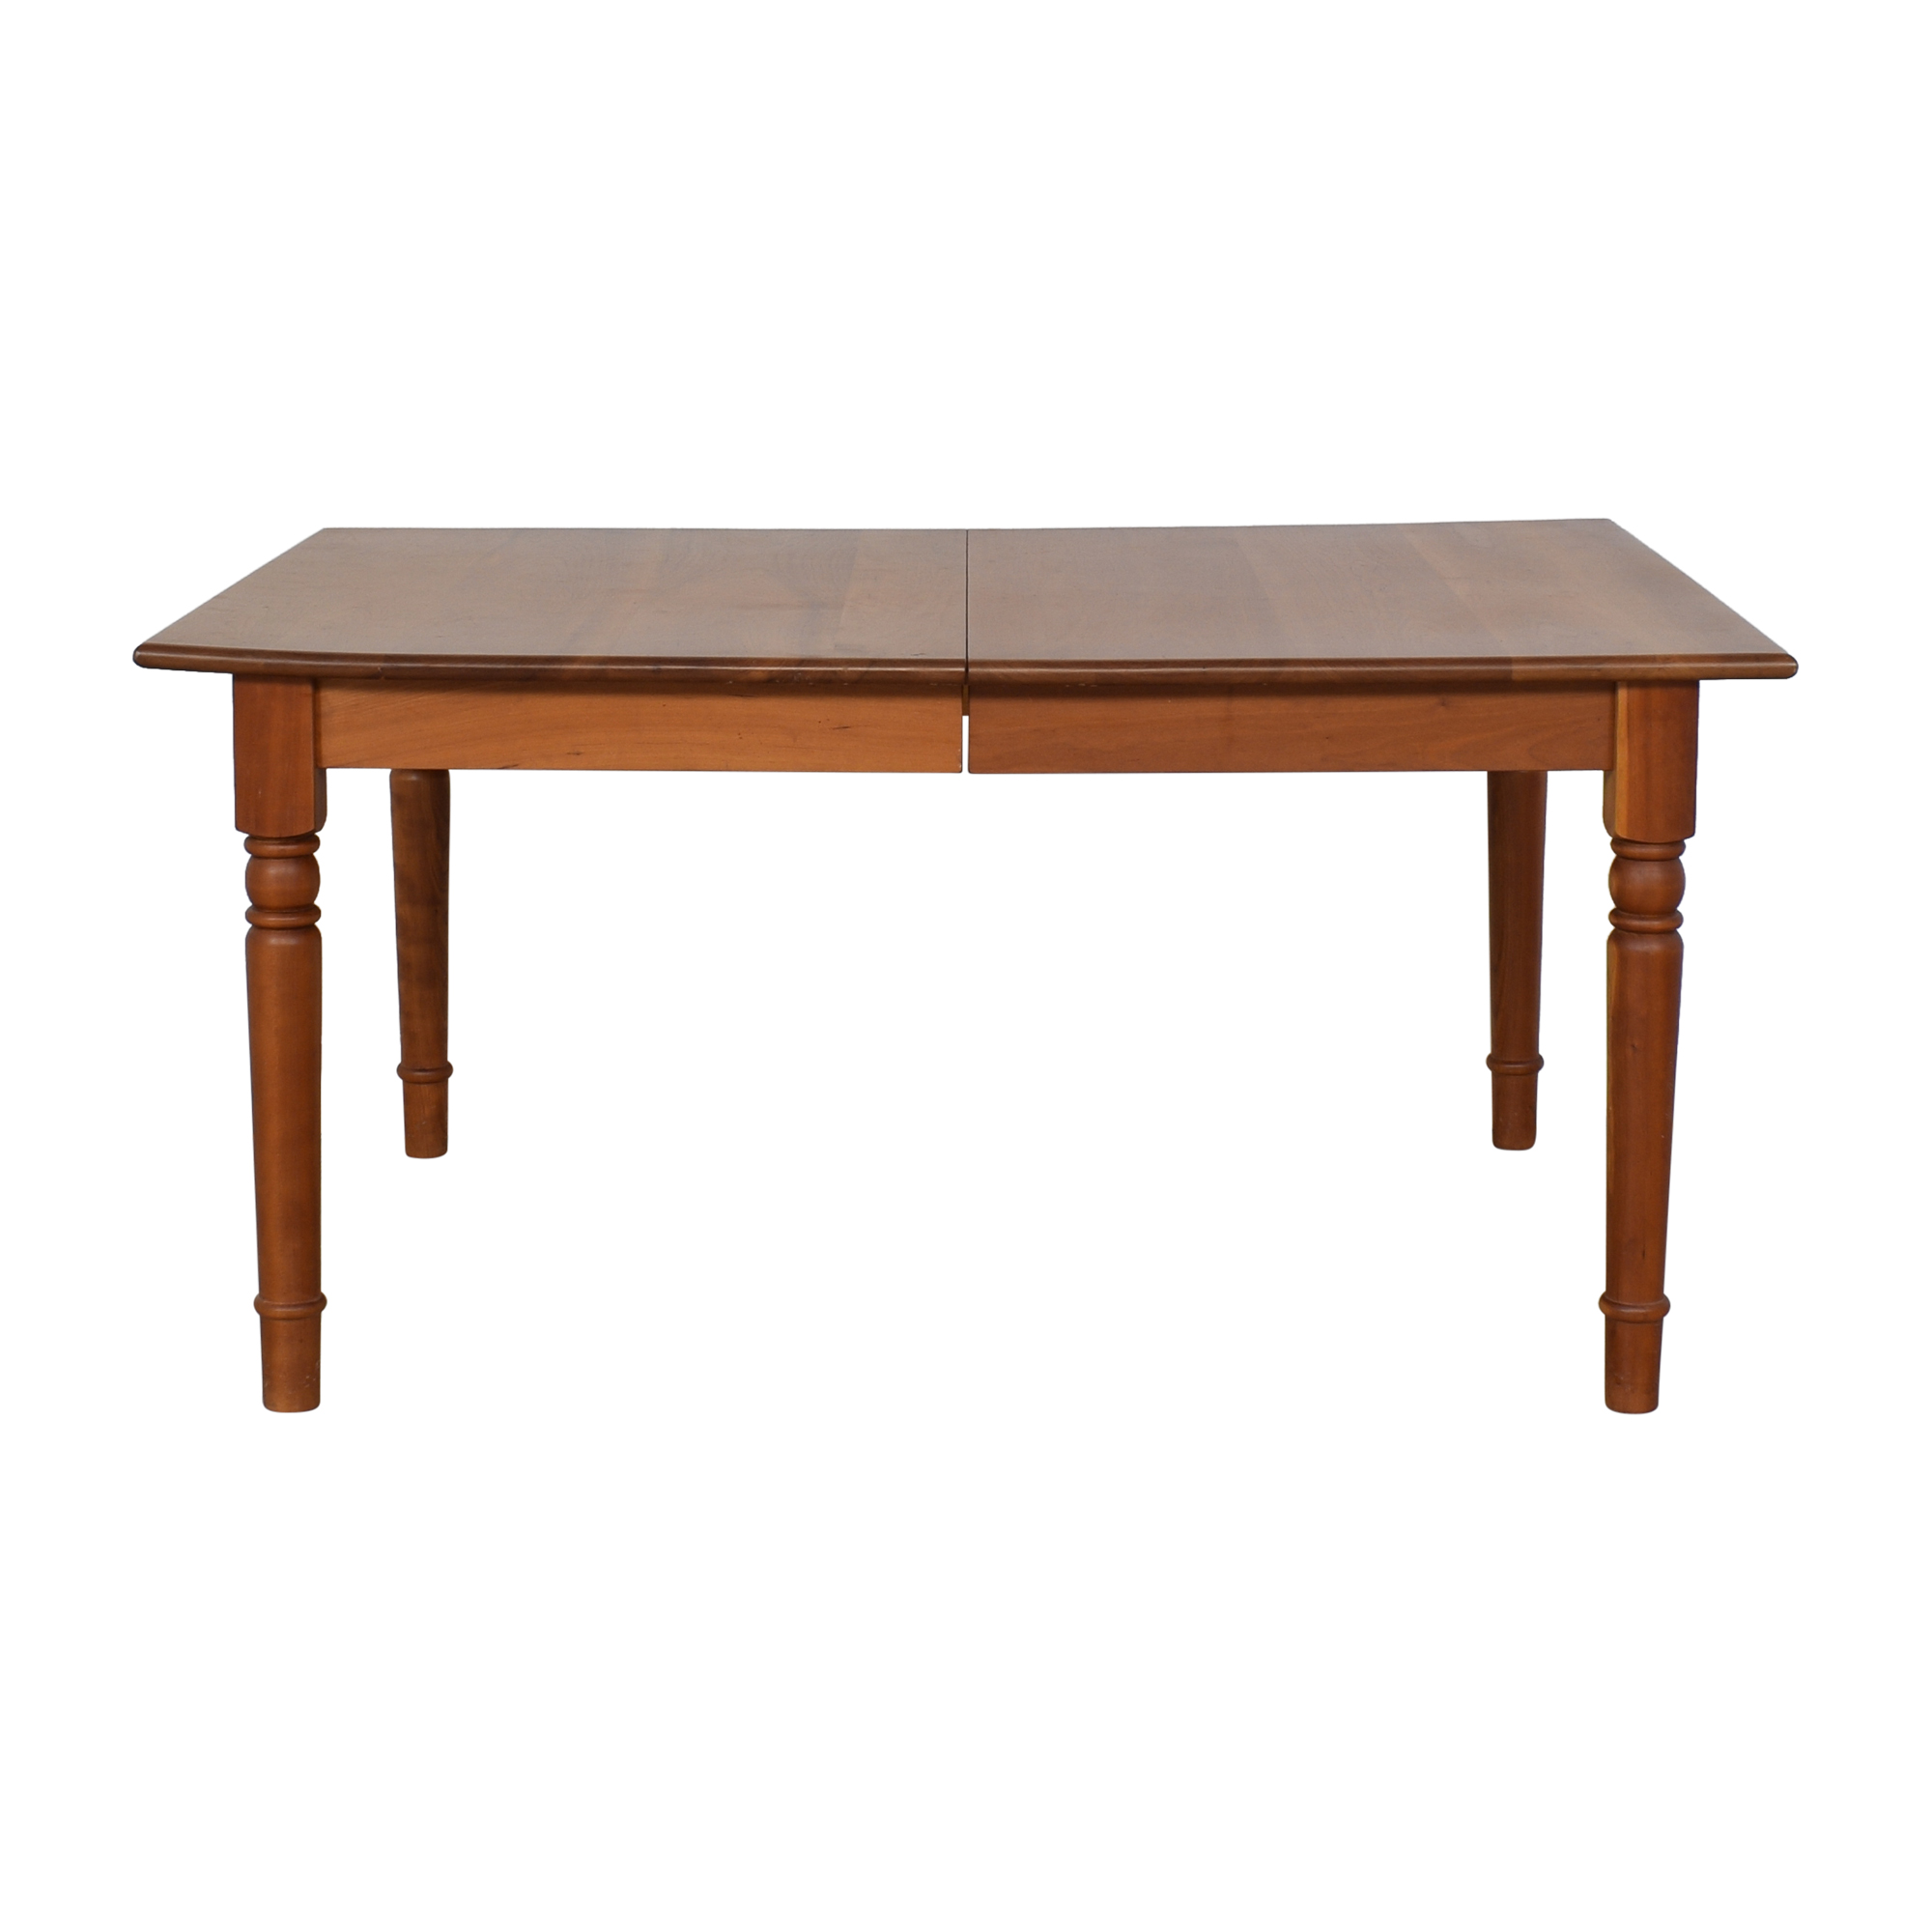 shop Asher Benjamin Studio Extended Dining Table Asher Benjamin Studio Dinner Tables